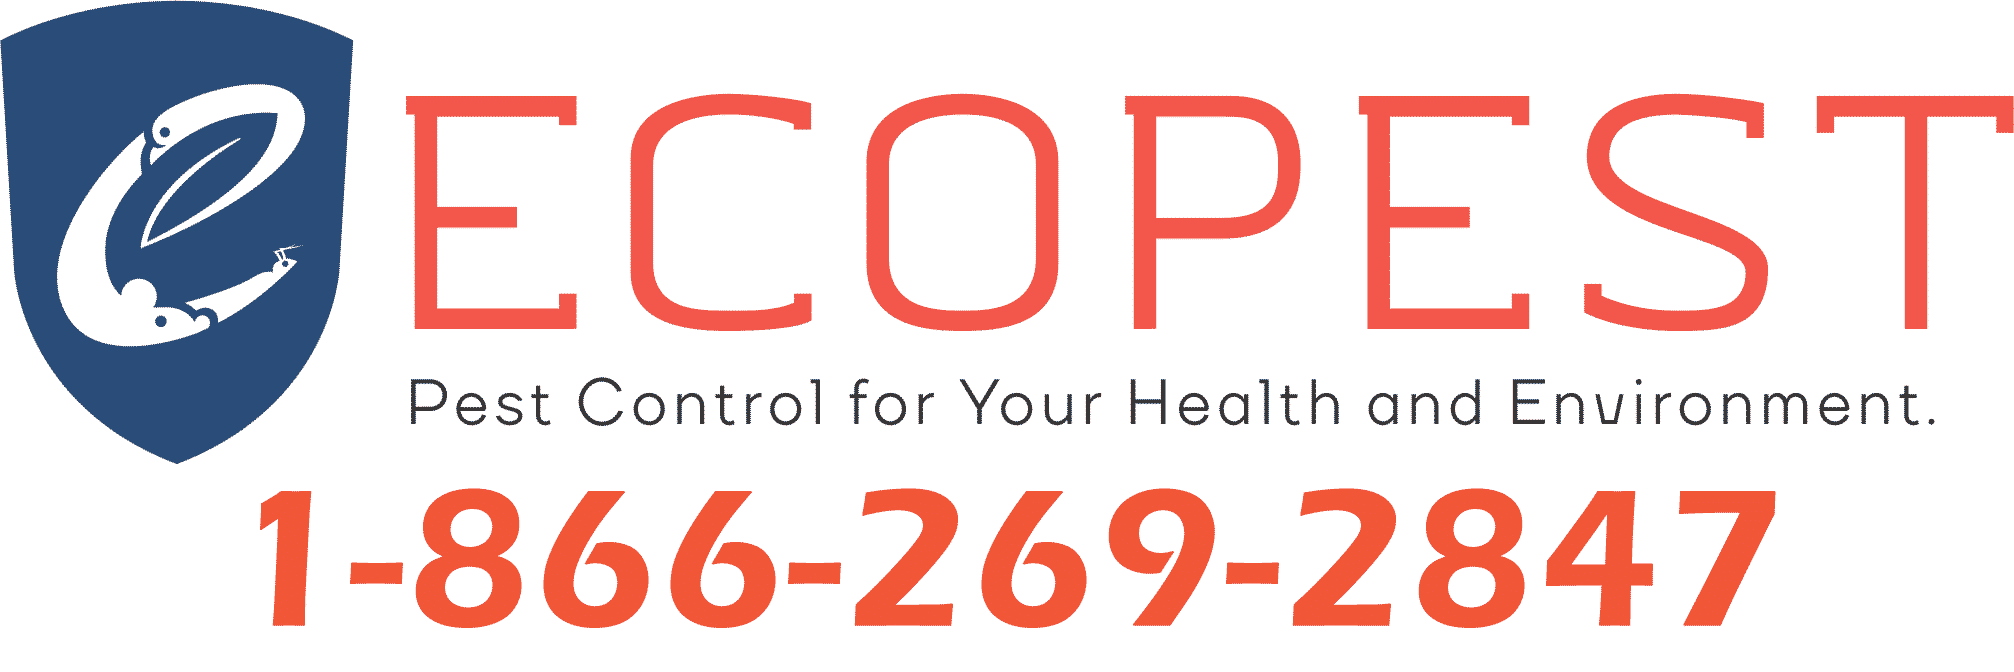 Ecopest | Your Pest Control Company